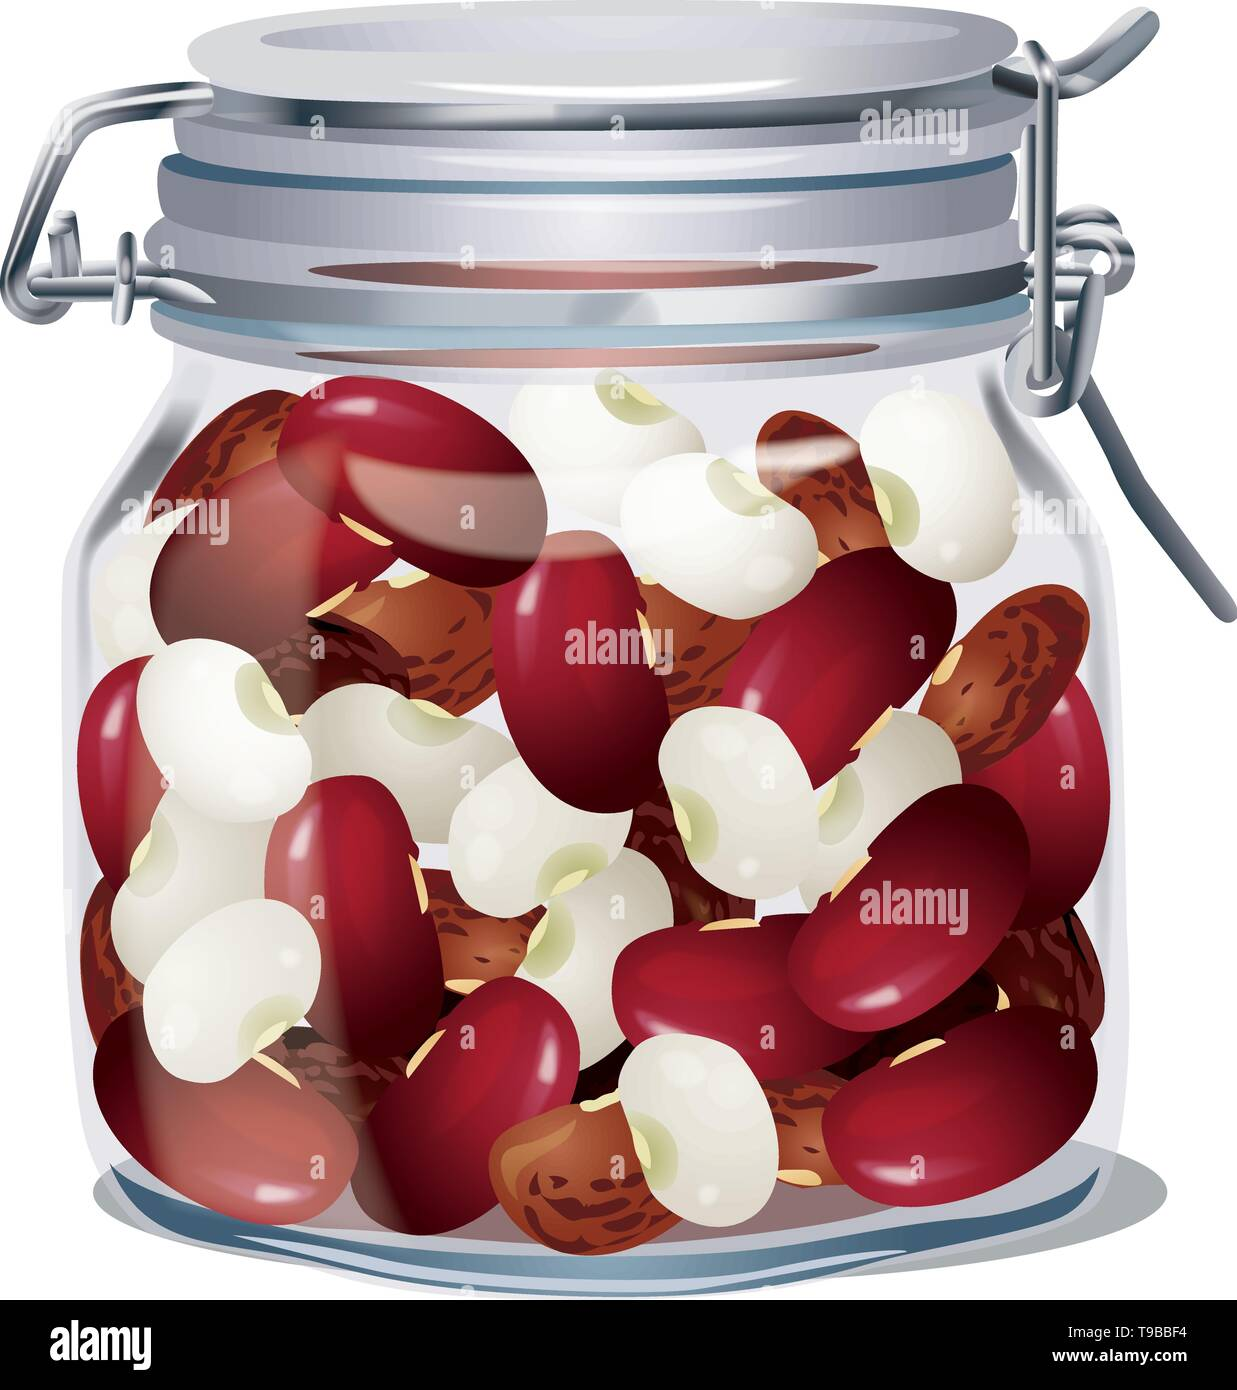 Glass jar with lid with beans inside. Isolated. Vector - Stock Vector